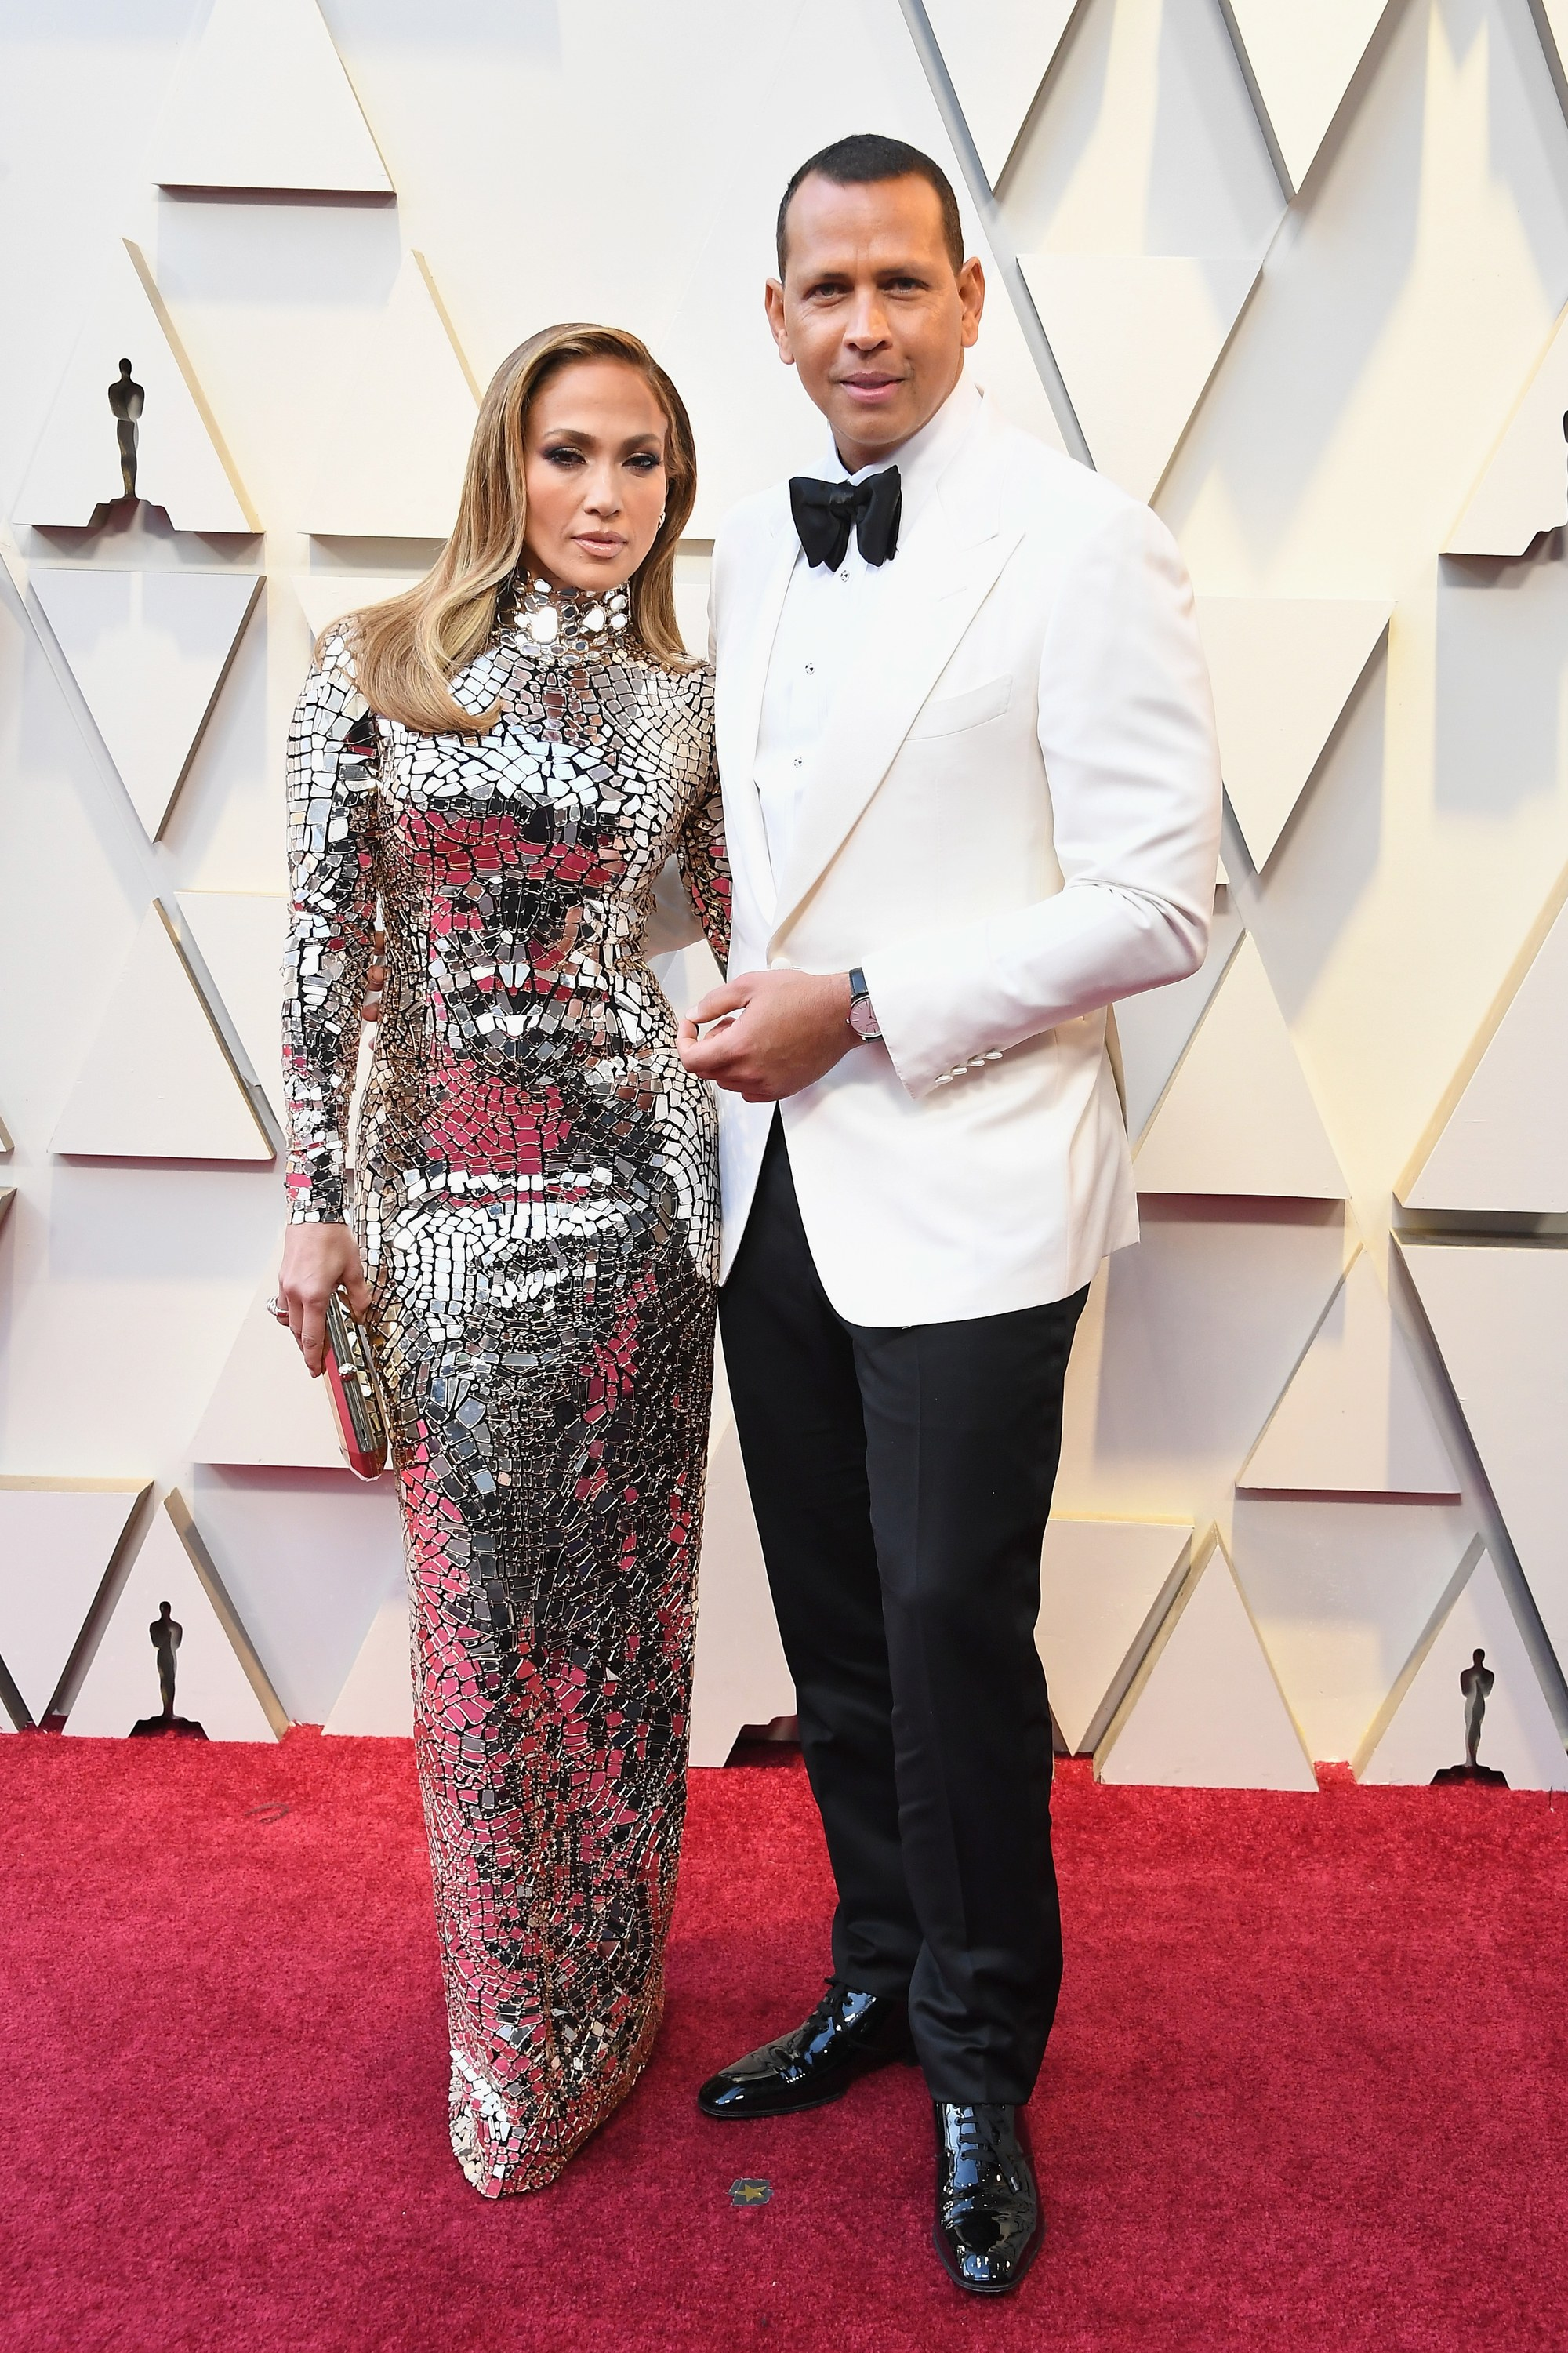 Jennifer-Lopez-Alex-Rodriguez -the-Oscars2019-Vogueint-Feb25-Getty-Images.jpg